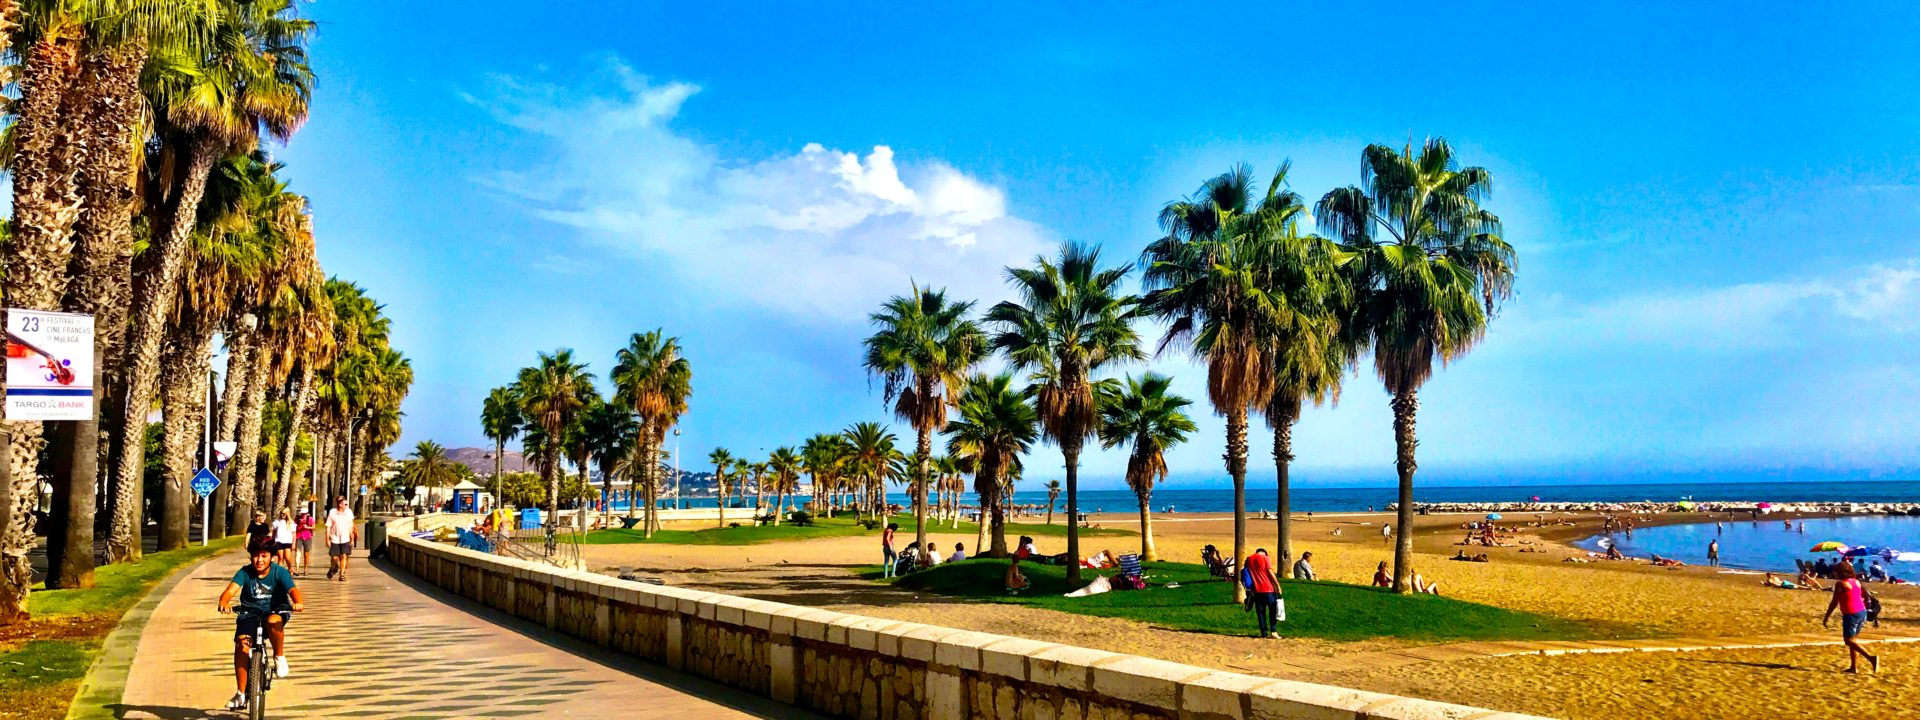 Malaga, Spain: An Unforgettable City In The Costa Del Sol